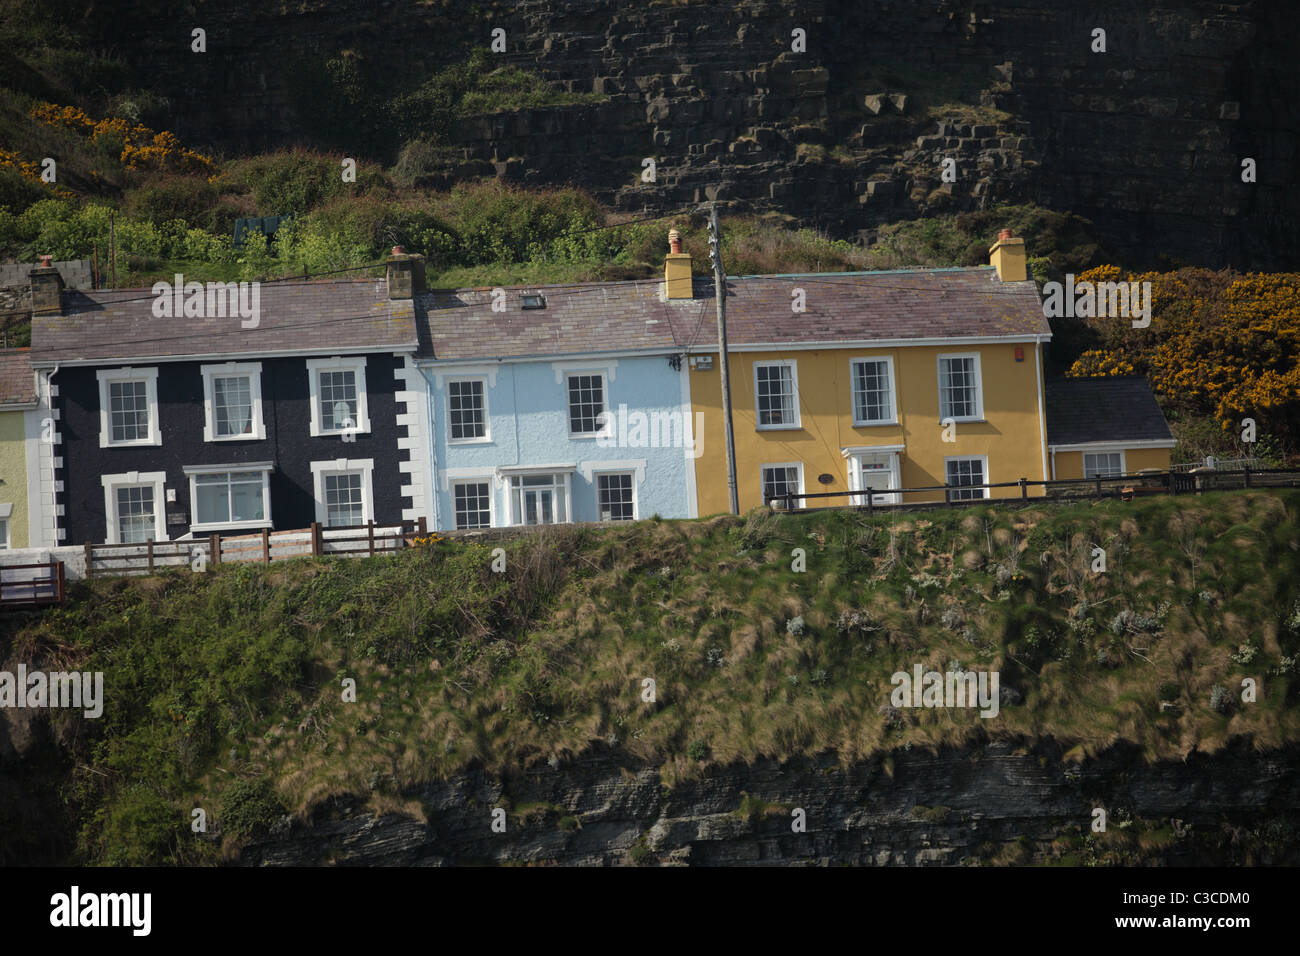 Row of terraced houses, New Quay, Ceredigion, Wales - Stock Image